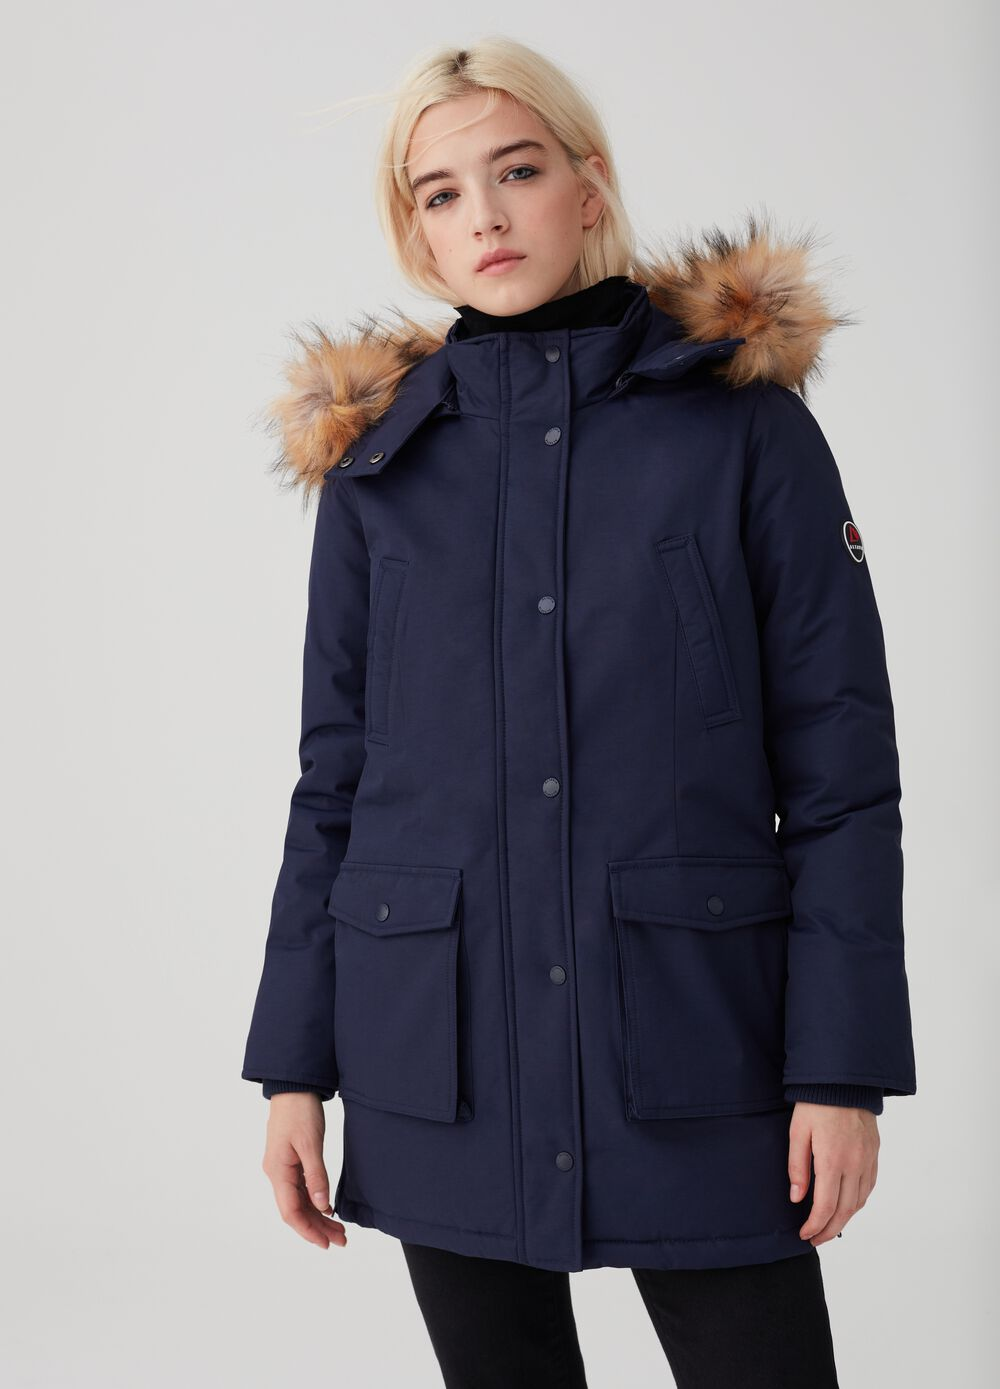 Altavia parka with faux fur trim insert